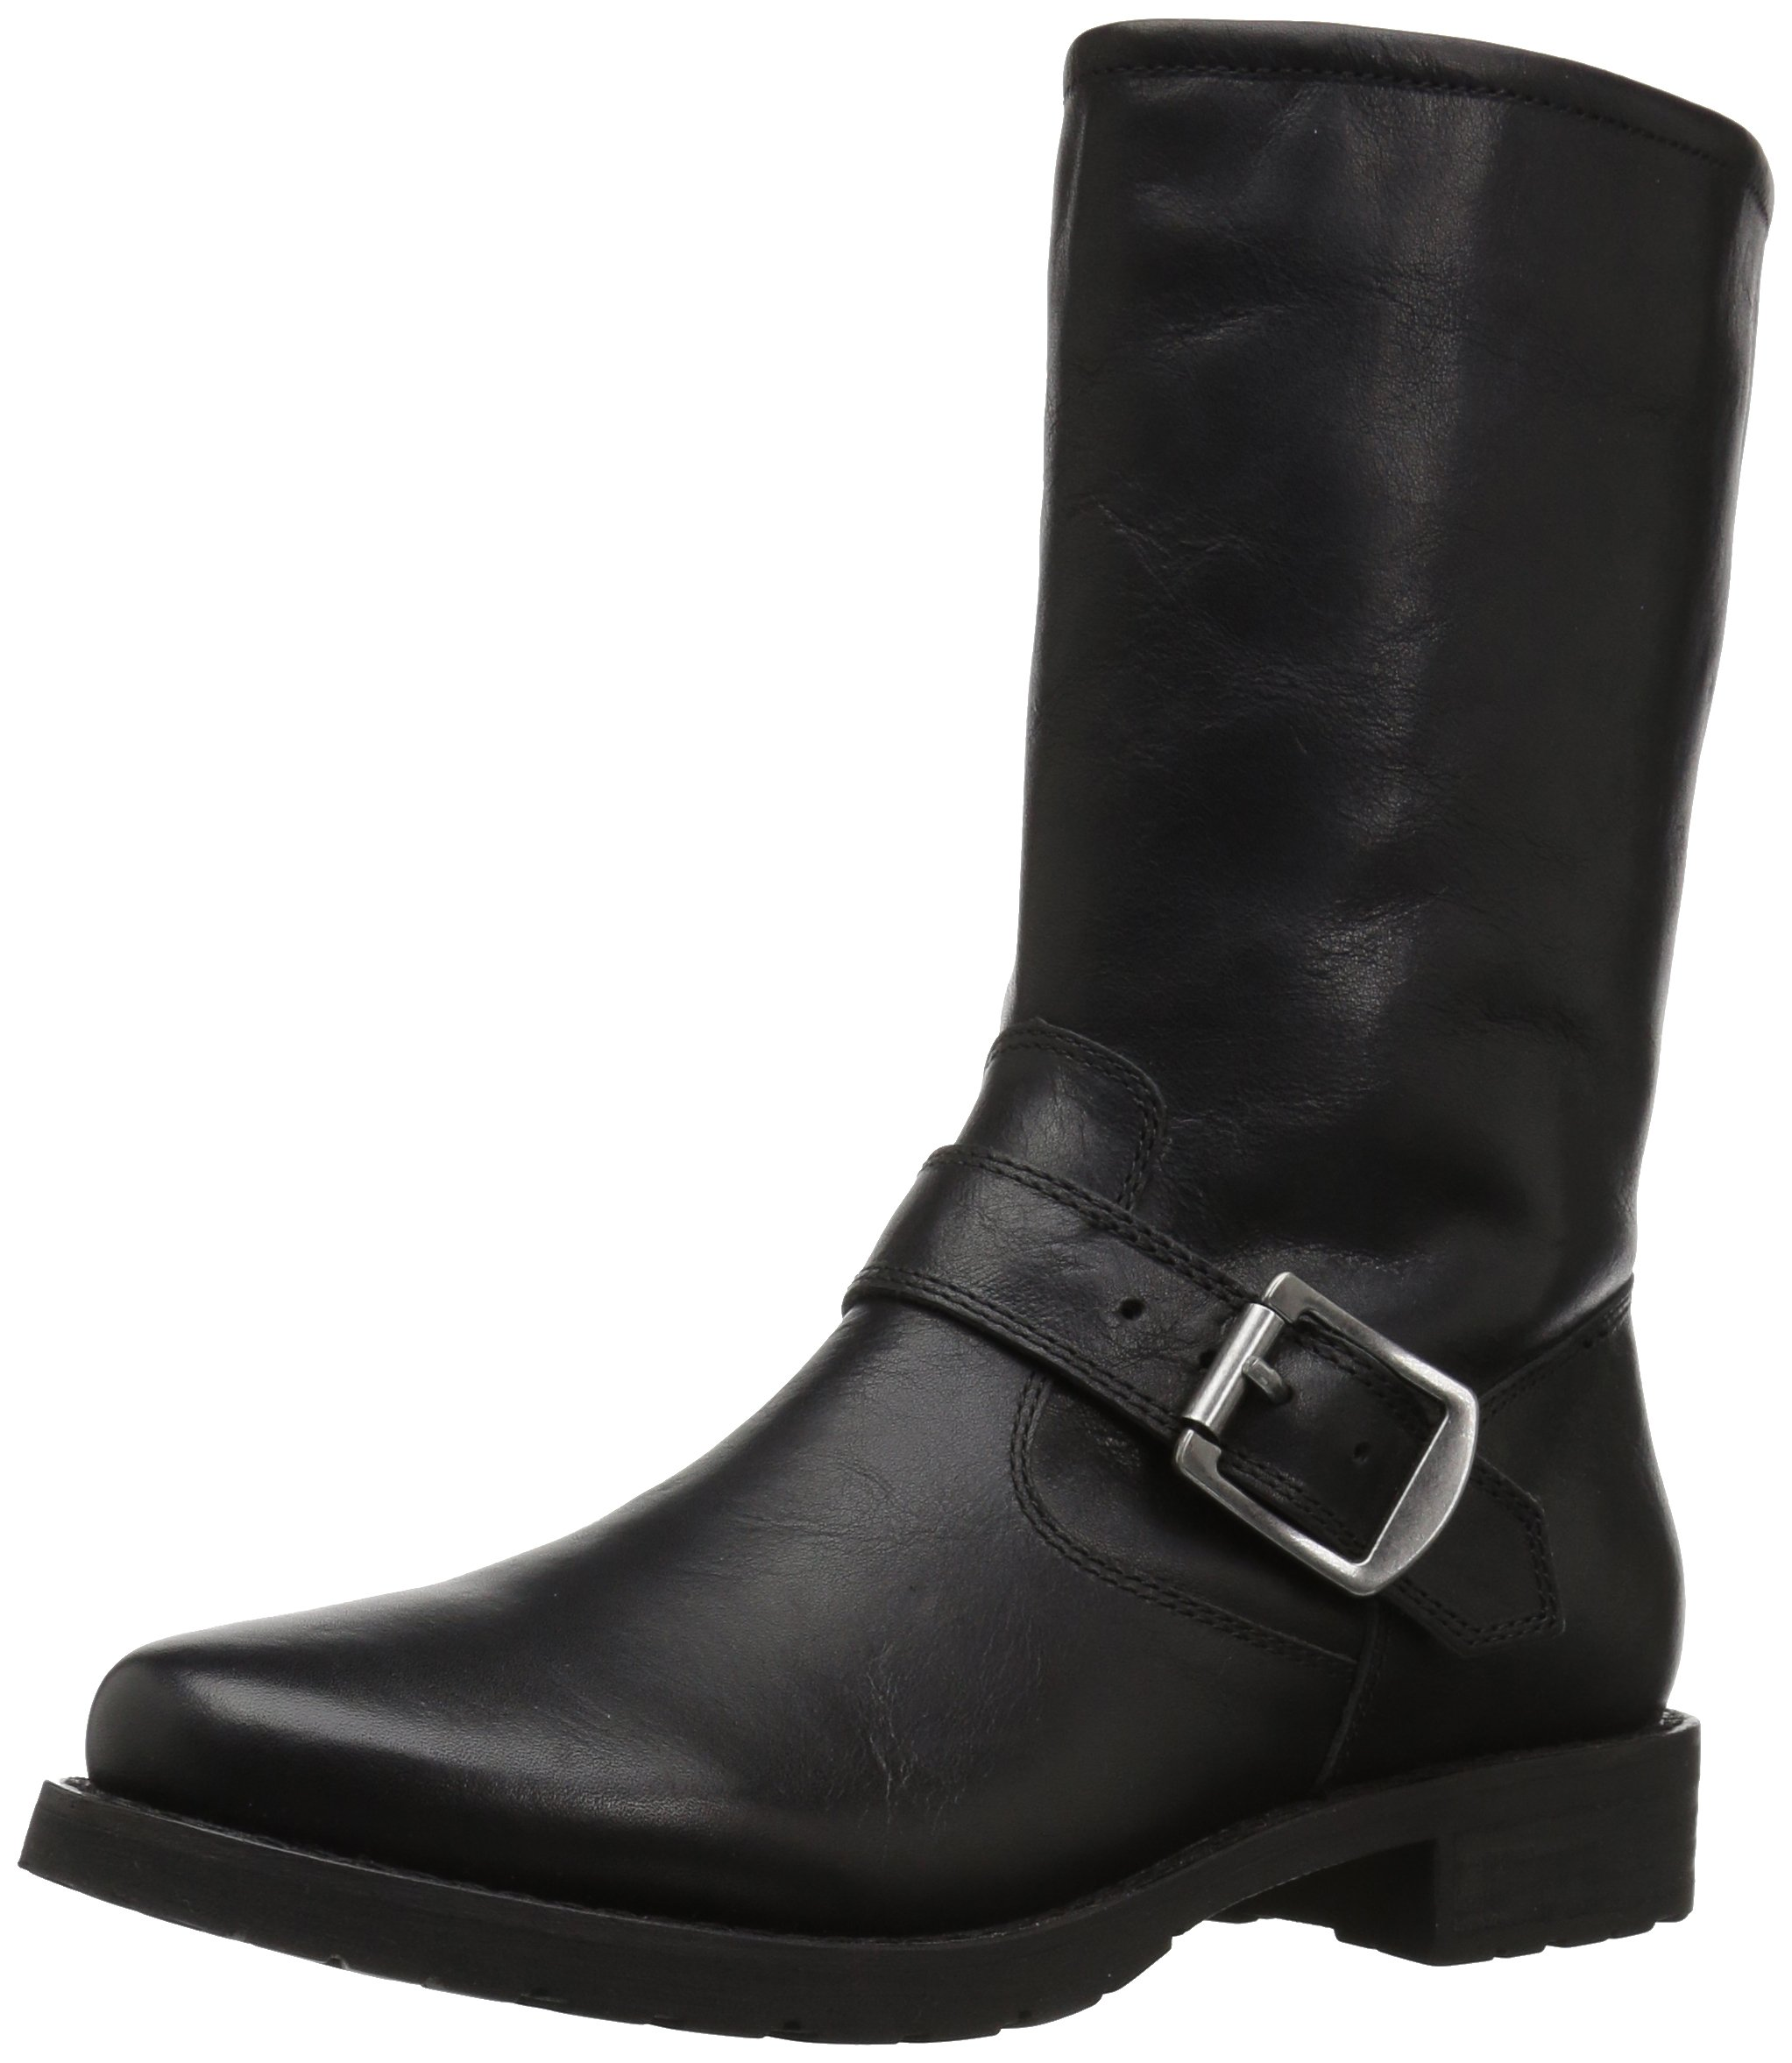 206 Collective Women's Brinnon Moto Boot, Black, 8.5 B US by 206 Collective